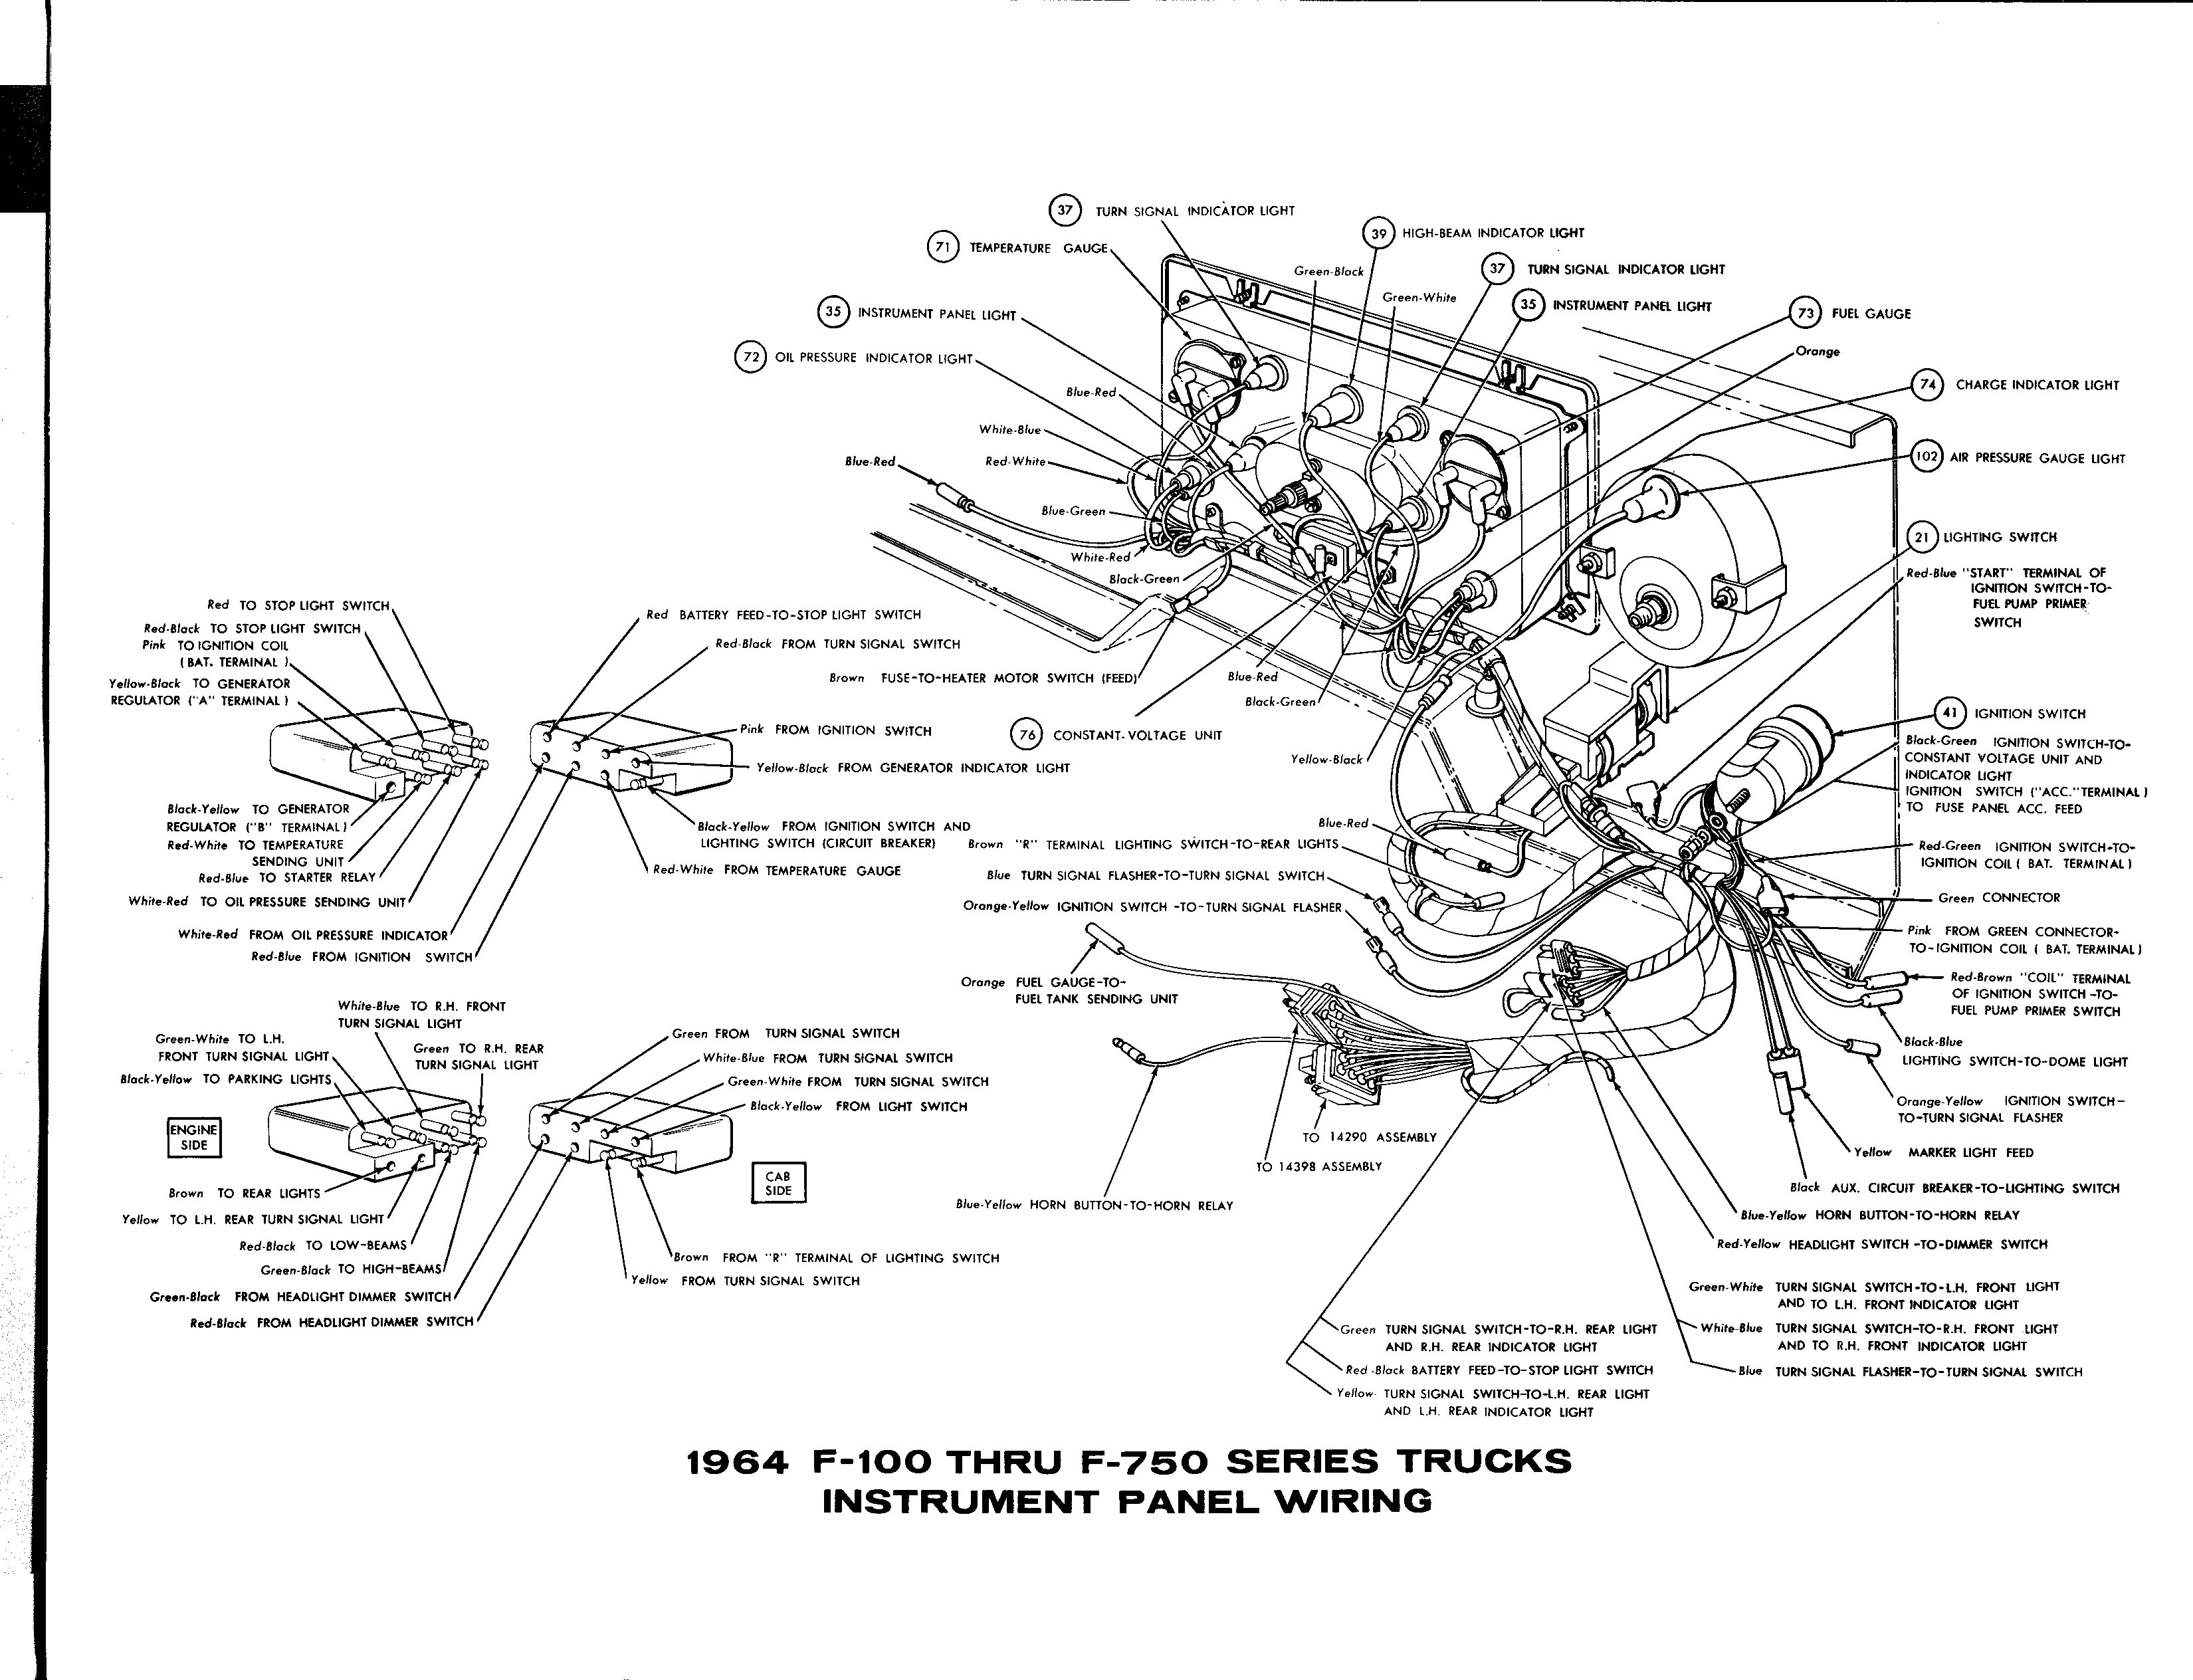 1988 Ford Ranger Fuel Pump Wiring Diagram Ford Truck Fuel